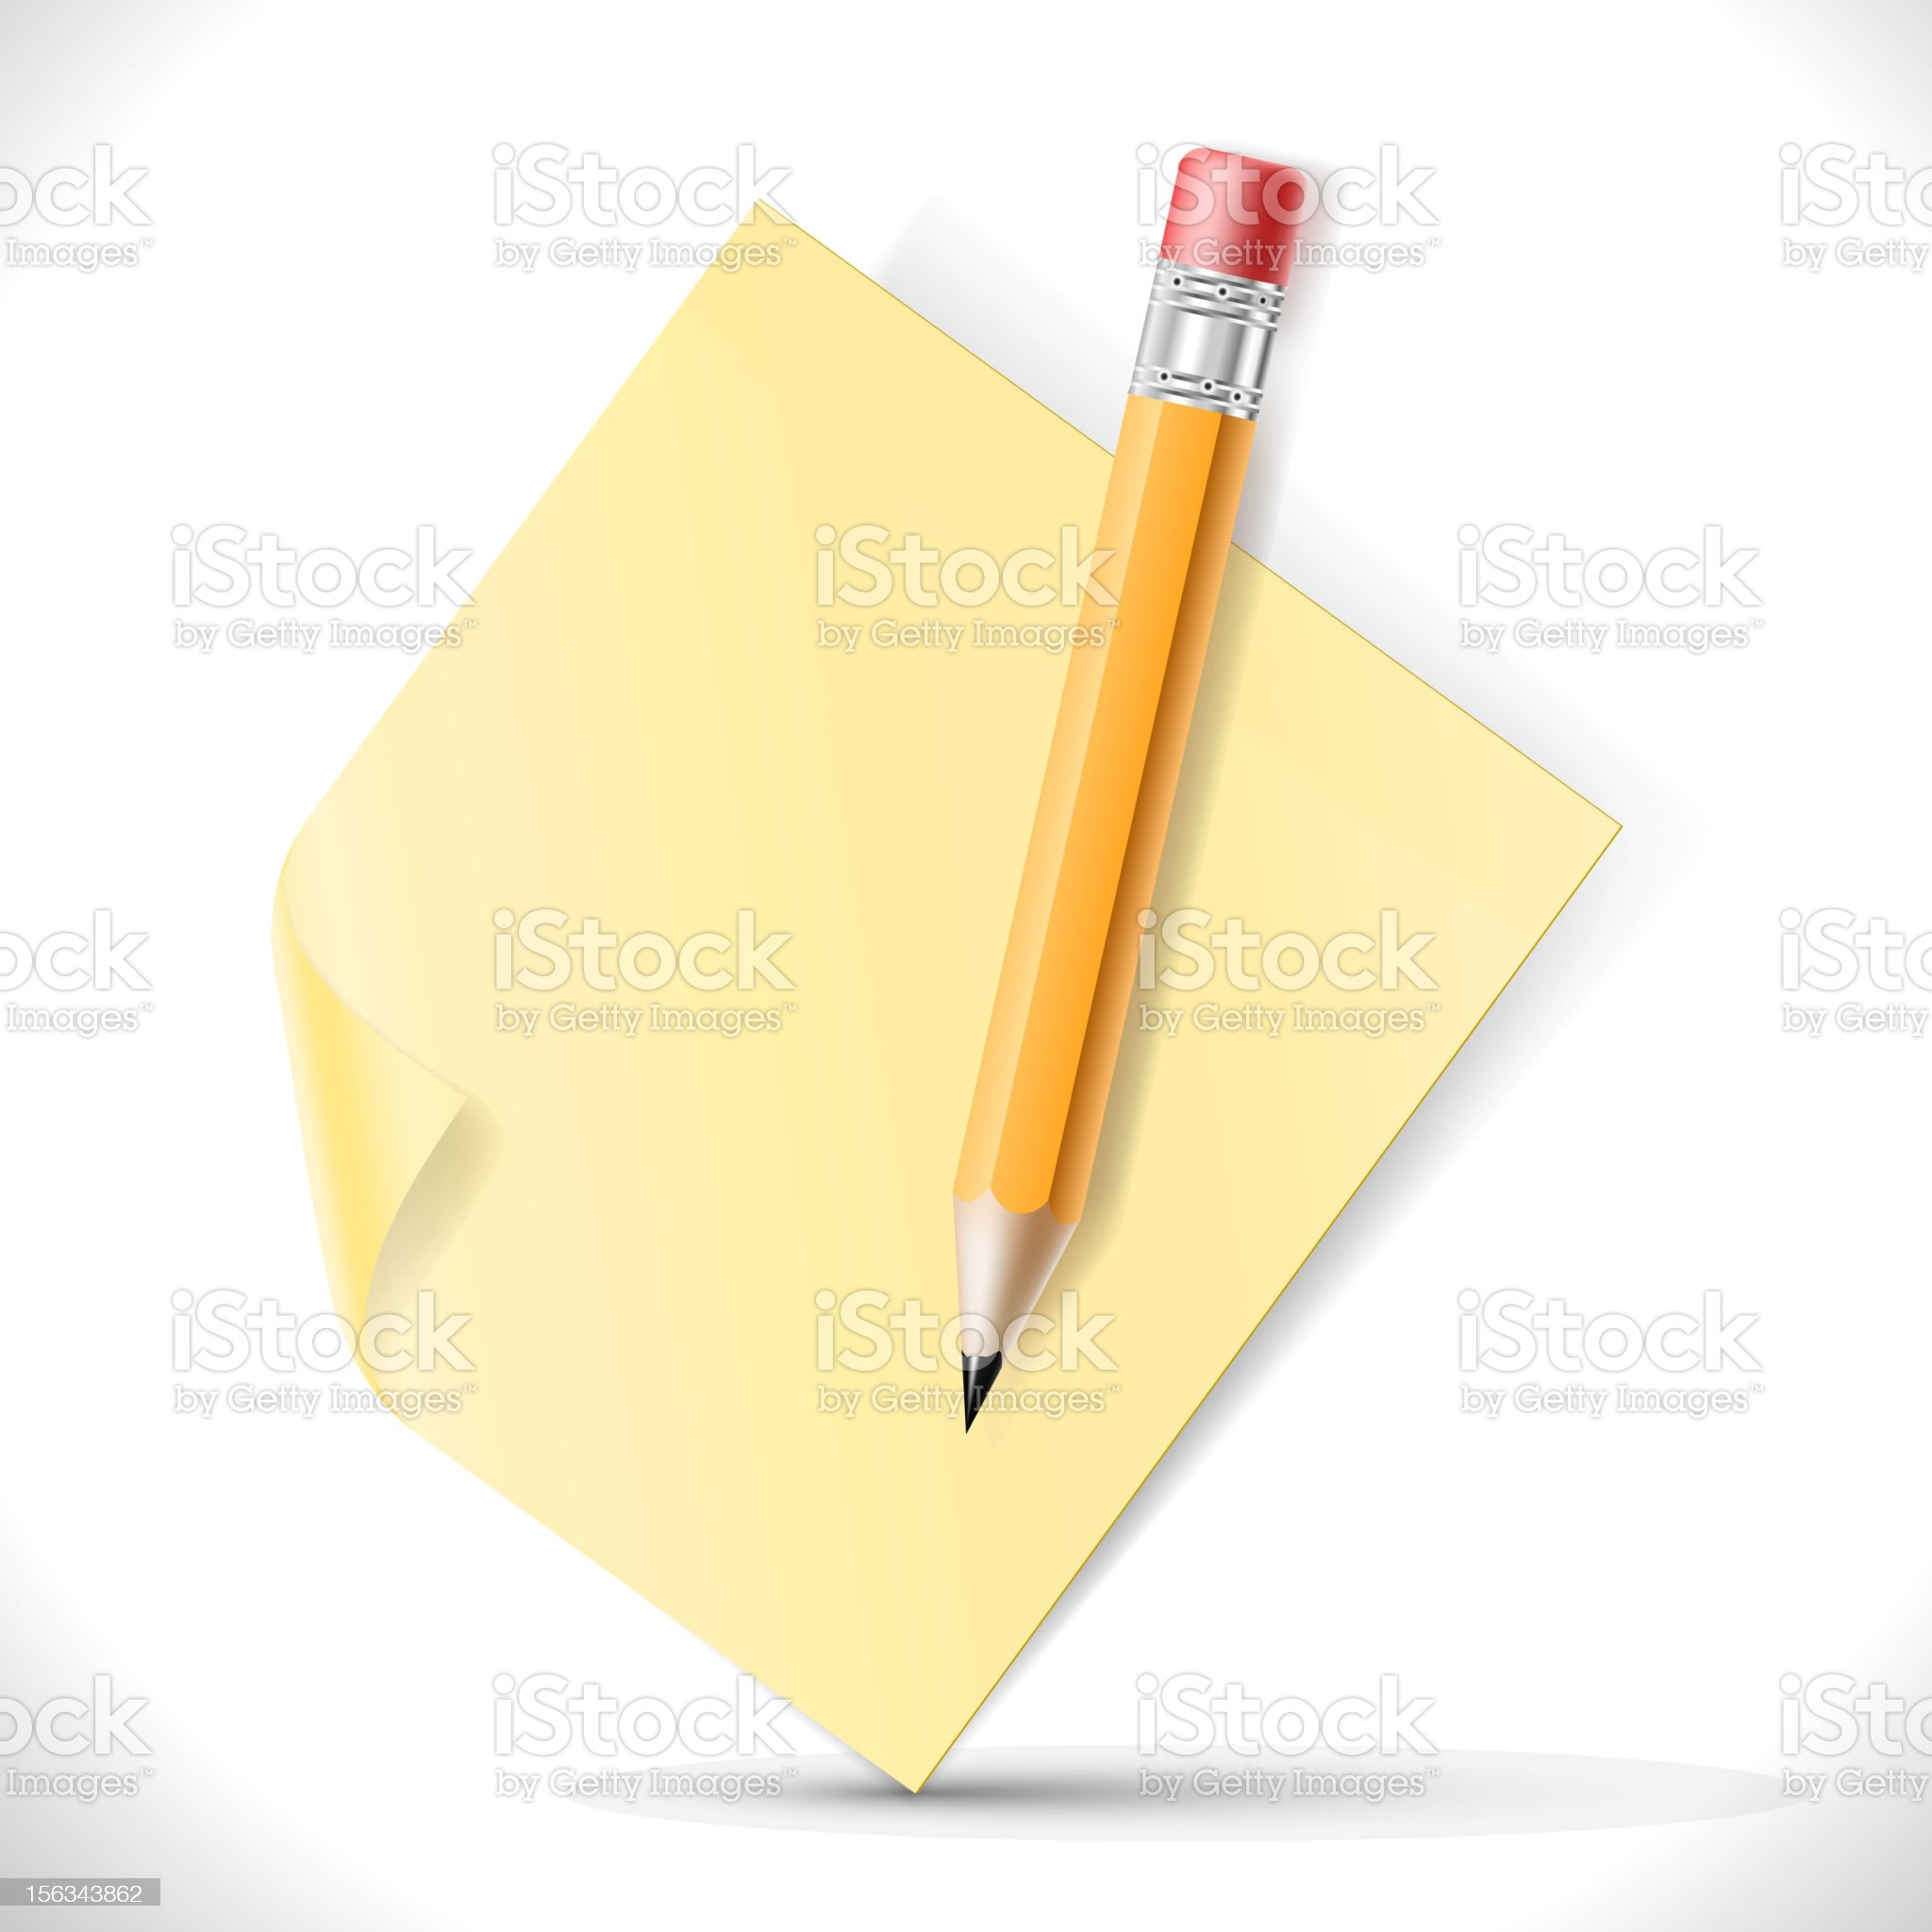 Pencil and adhesive paper royalty-free stock vector art